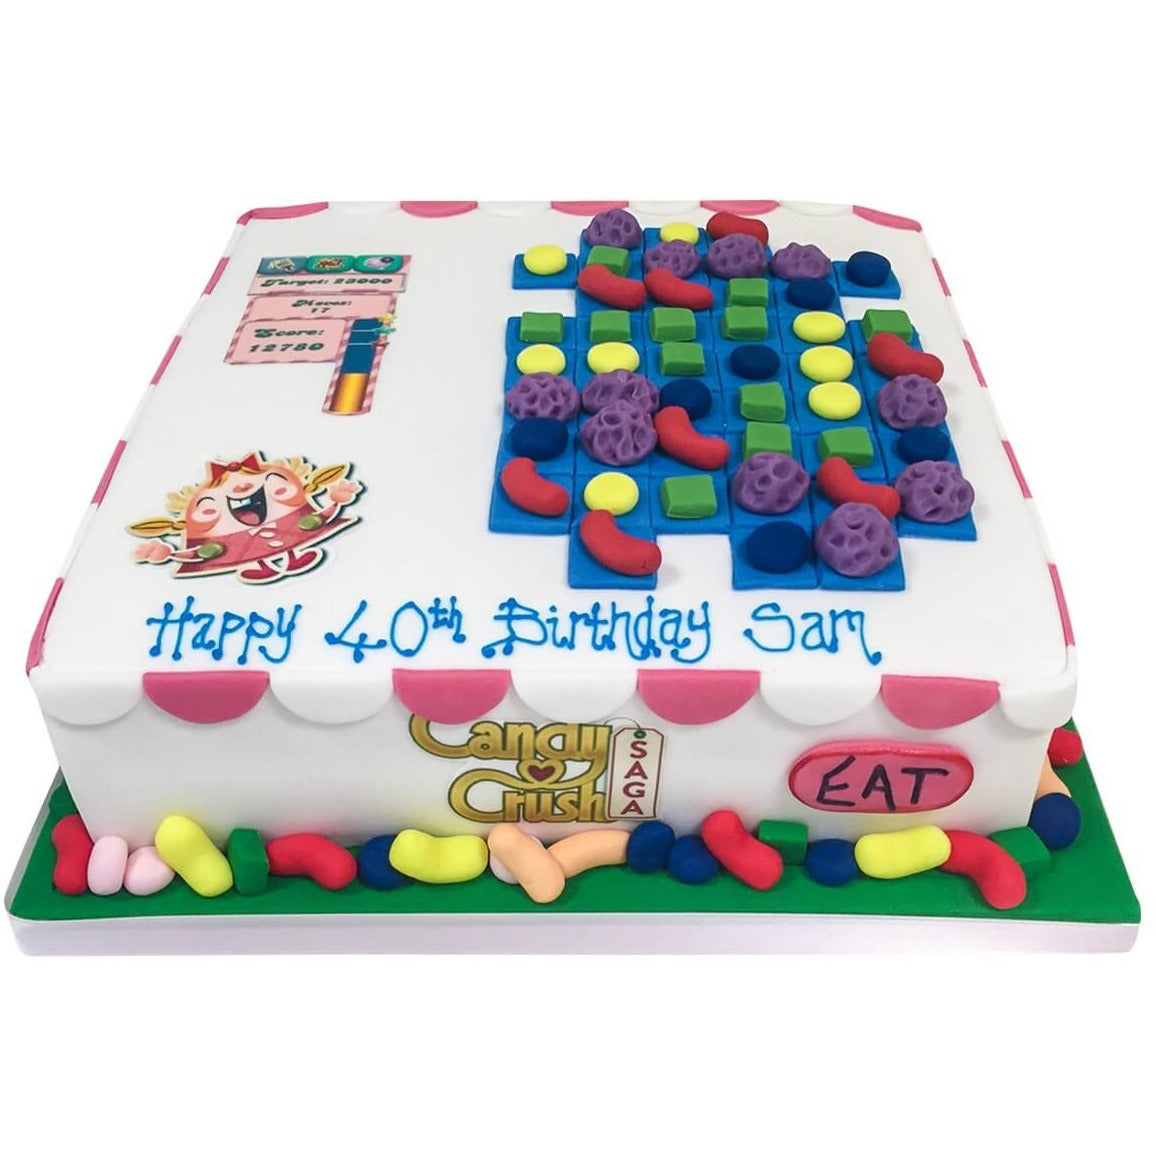 Terrific Candy Crush Birthday Cake Buy Online Free Uk Delivery New Cakes Birthday Cards Printable Opercafe Filternl